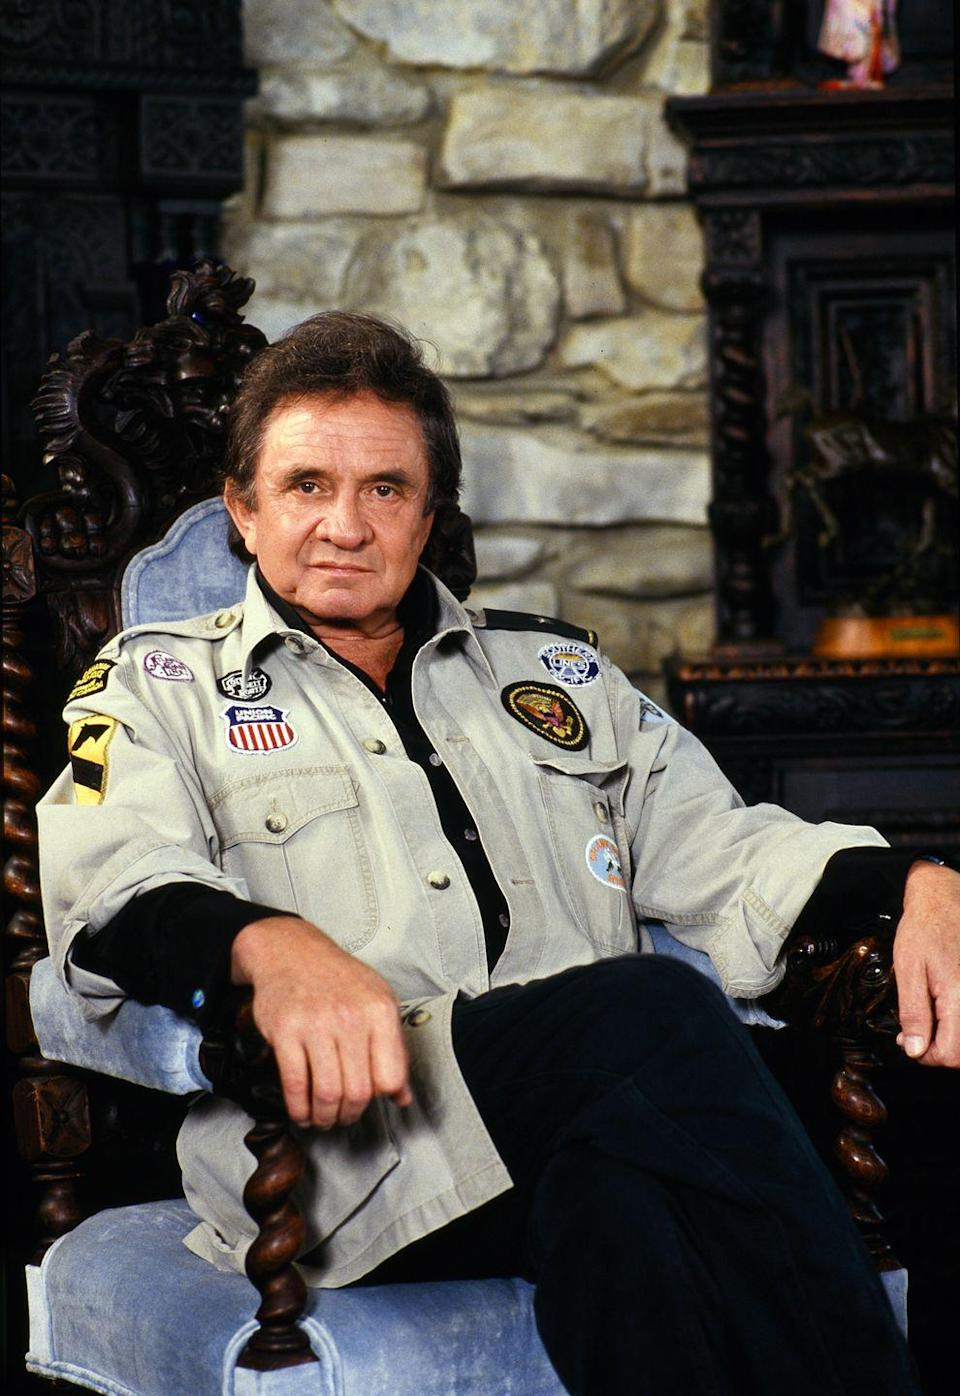 """<p>In 1988, Johnny Cash was having an emergency double coronary bypass when he came down with pneumonia—and the combination almost killed him. In his book <em><a href=""""https://www.amazon.com/Cash-Autobiography-Johnny/dp/0060727535?tag=syn-yahoo-20&ascsubtag=%5Bartid%7C2141.g.36311064%5Bsrc%7Cyahoo-us"""" rel=""""nofollow noopener"""" target=""""_blank"""" data-ylk=""""slk:Cash: The Autobiography"""" class=""""link rapid-noclick-resp"""">Cash: The Autobiography</a></em>, he said the experience changed his outlook on life: """"That great light is a light that now leads me on and directs me and guides me. That great light is the light of this world. That great light is the light out of this world, and into that better world. And I'm lookin' forward to walkin' into that great light.""""</p>"""